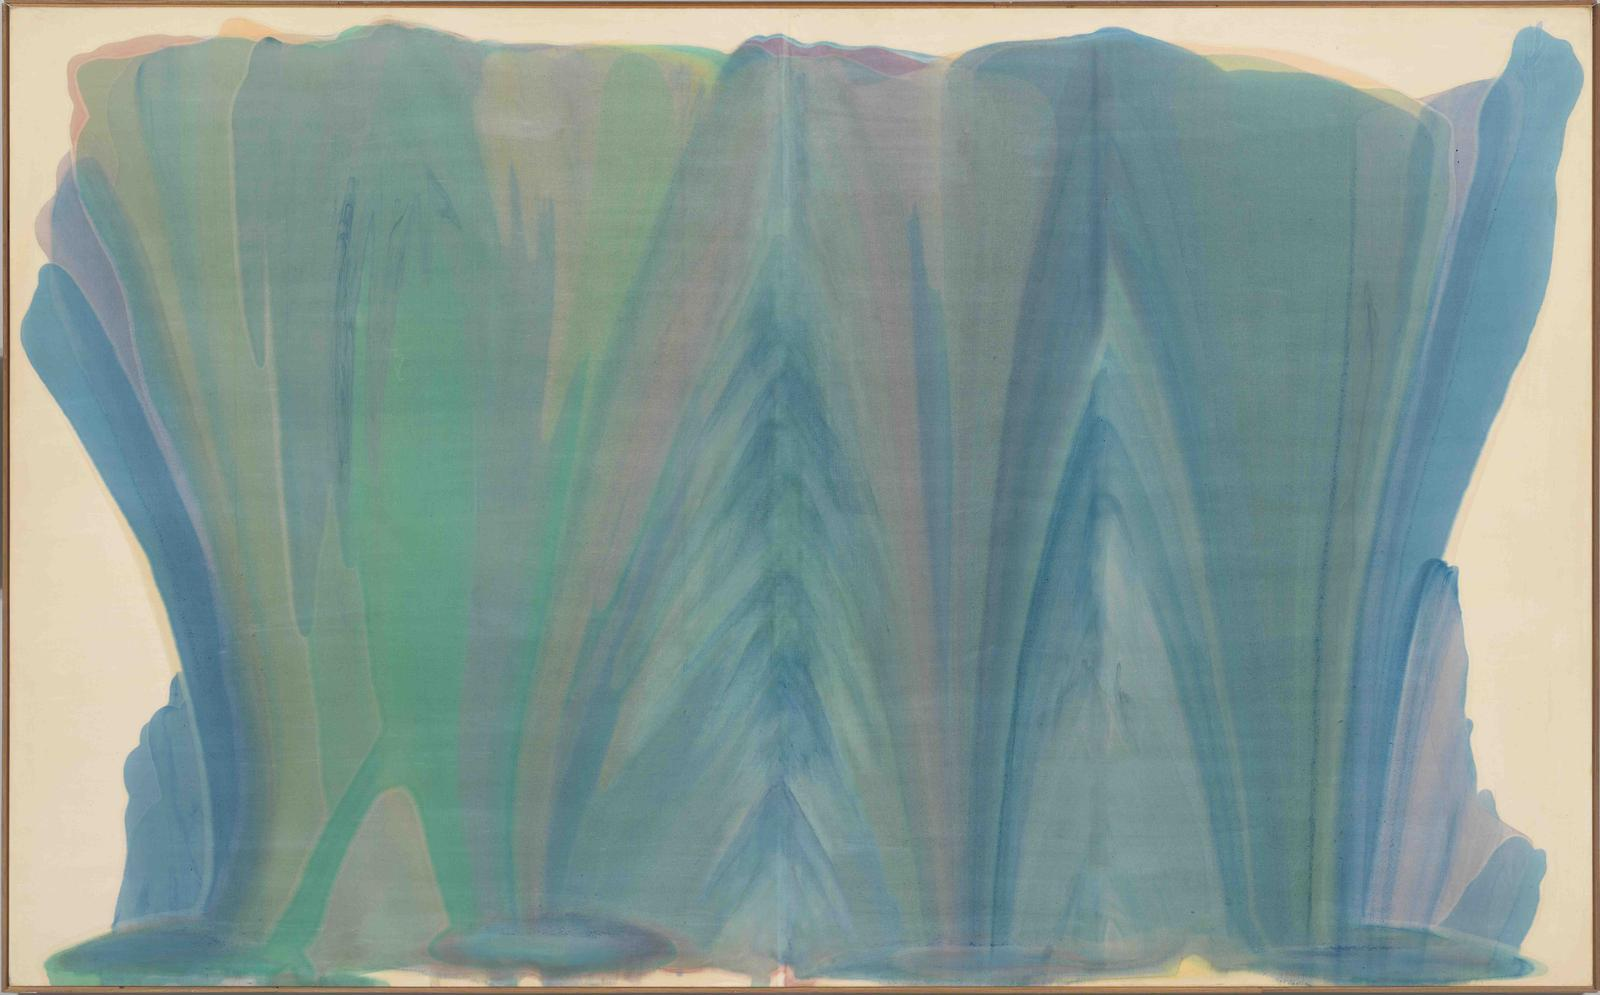 morris louis tet 1958 acrylic magma on raw cotton duck canvas 94 x 152 inches